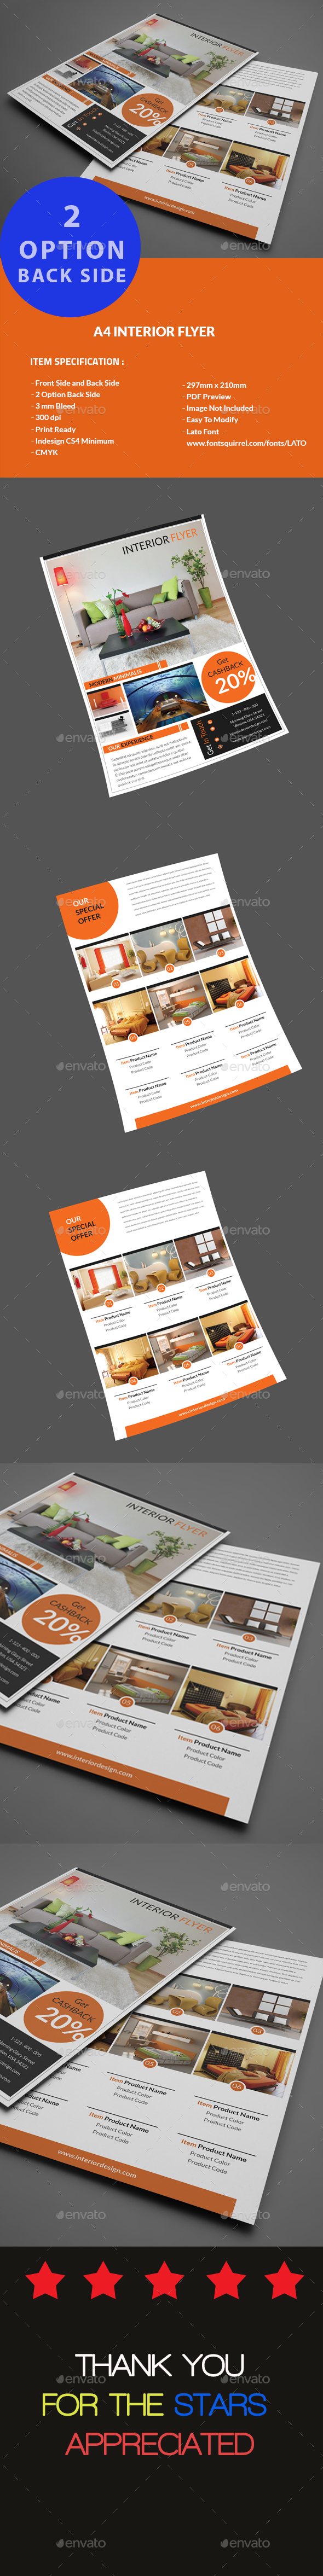 Interior Design Flyer - Flyers Print Templates